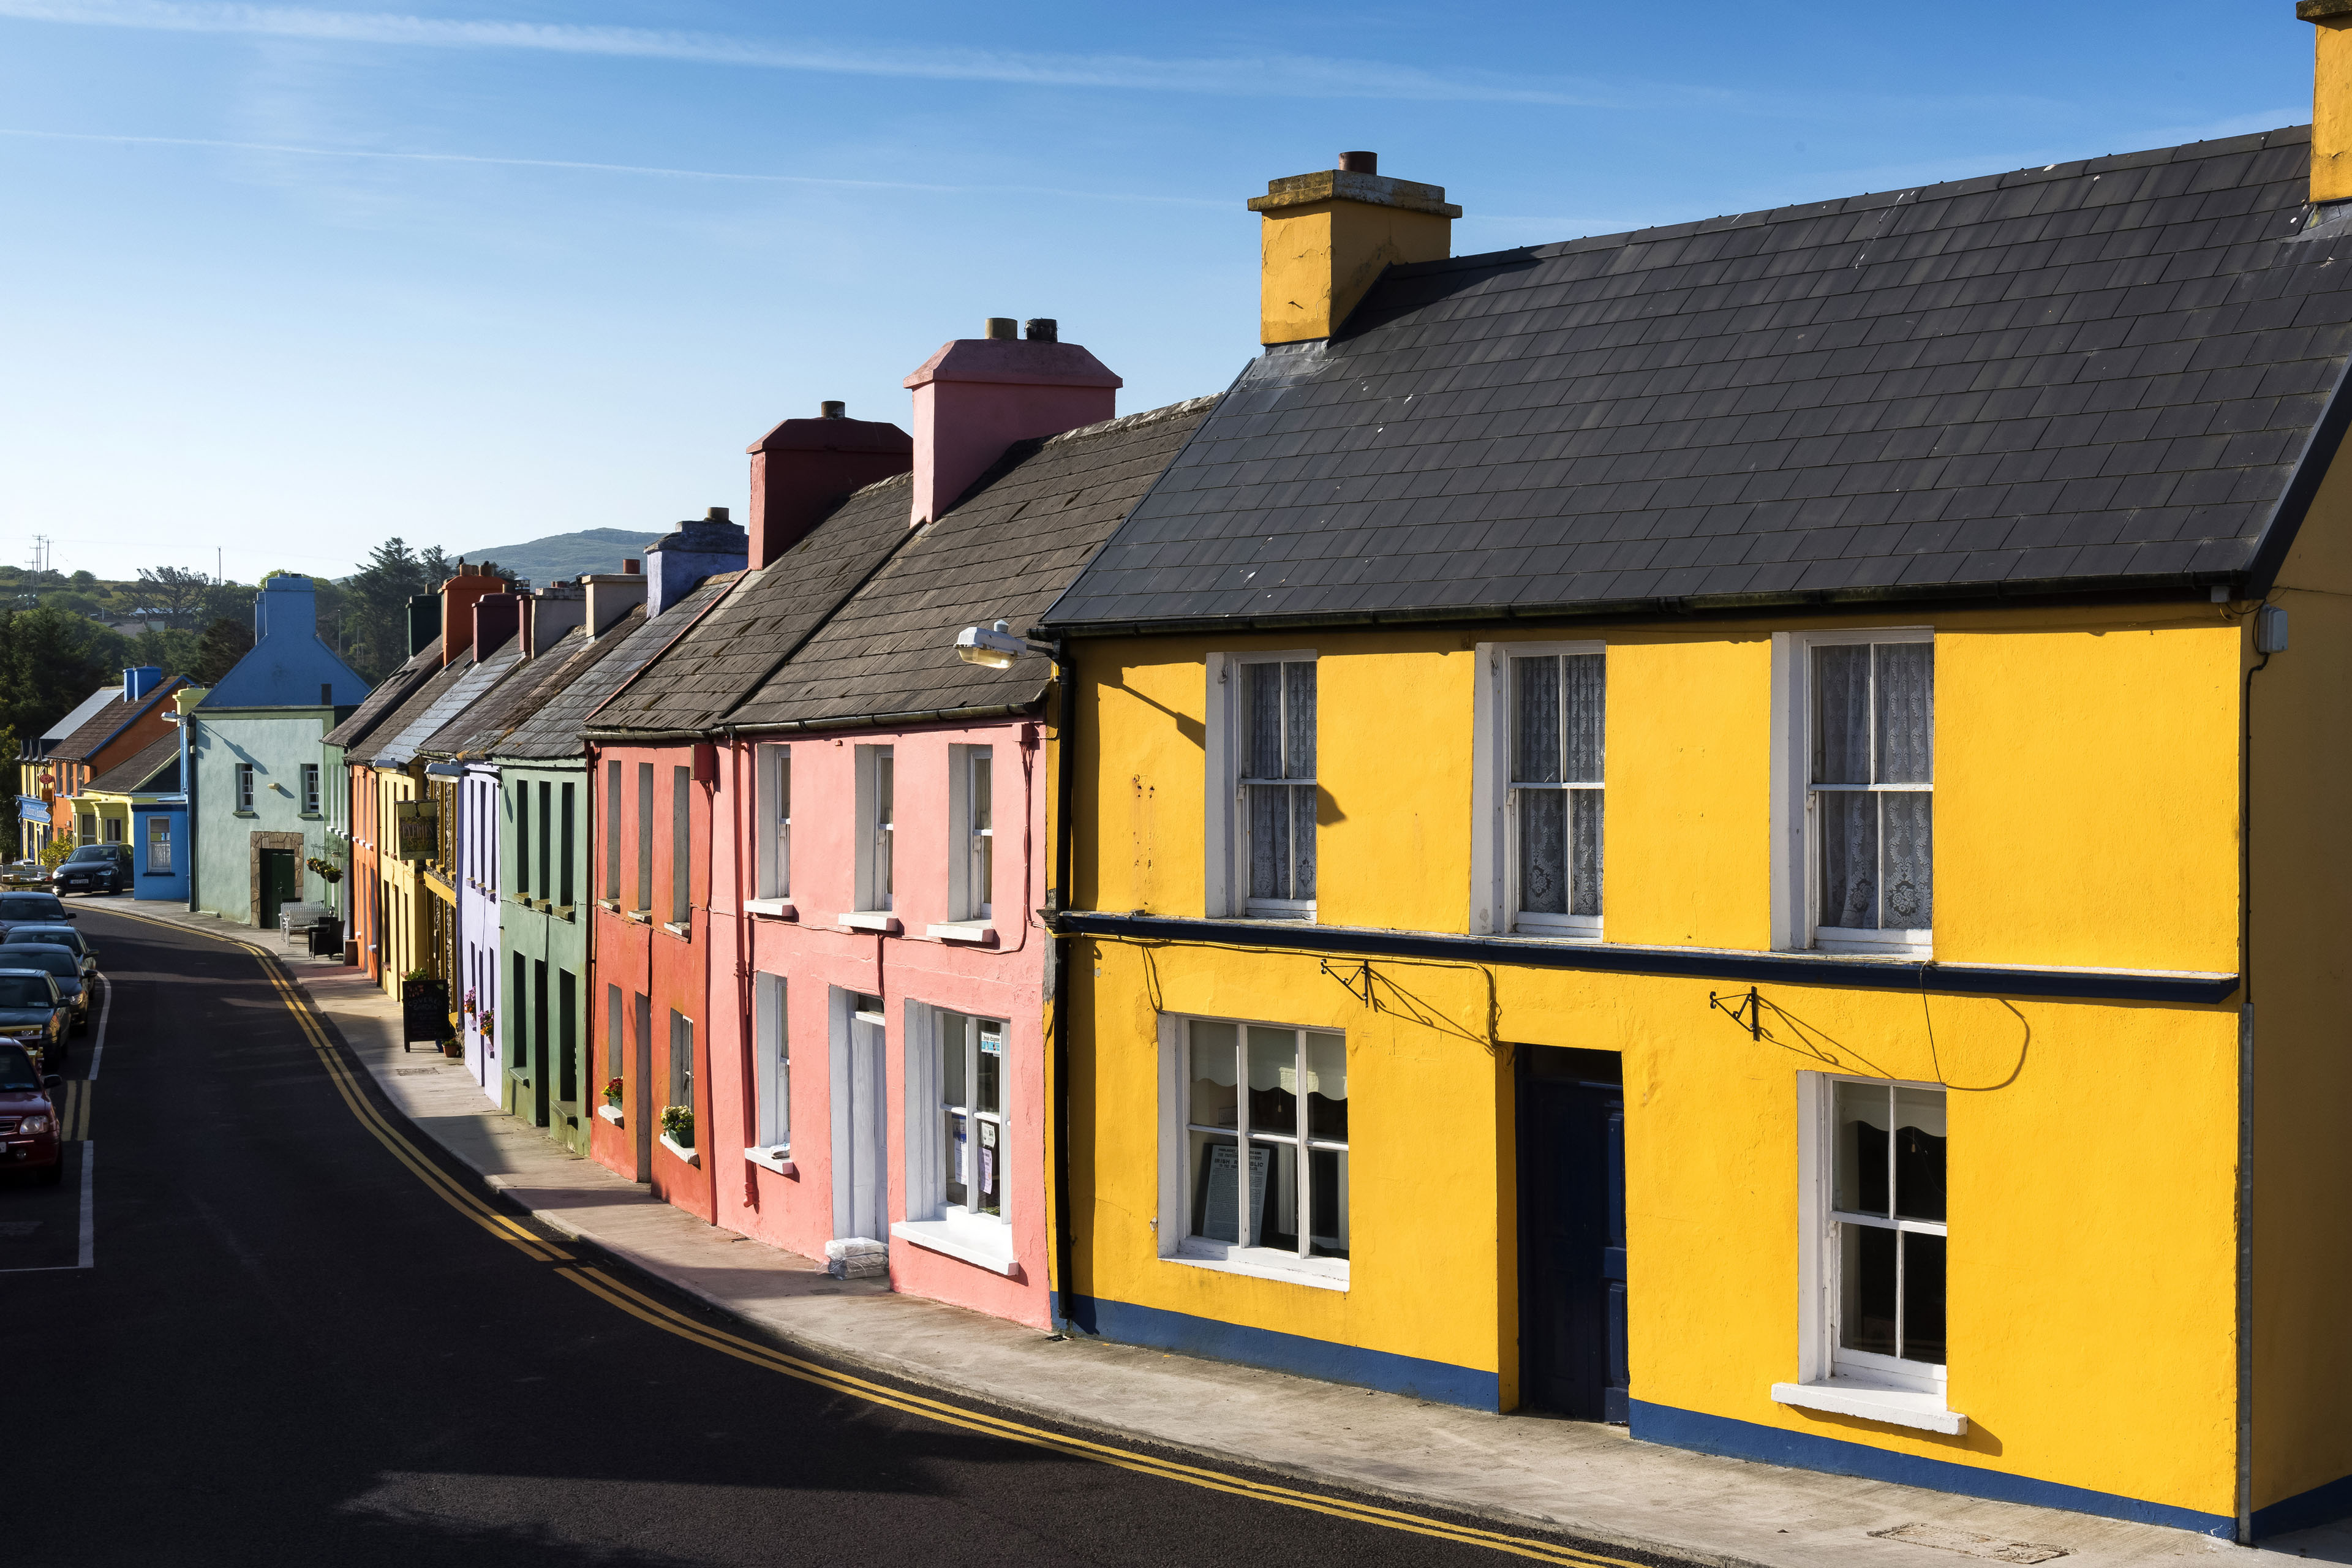 EY - Row of brightly coloured houses